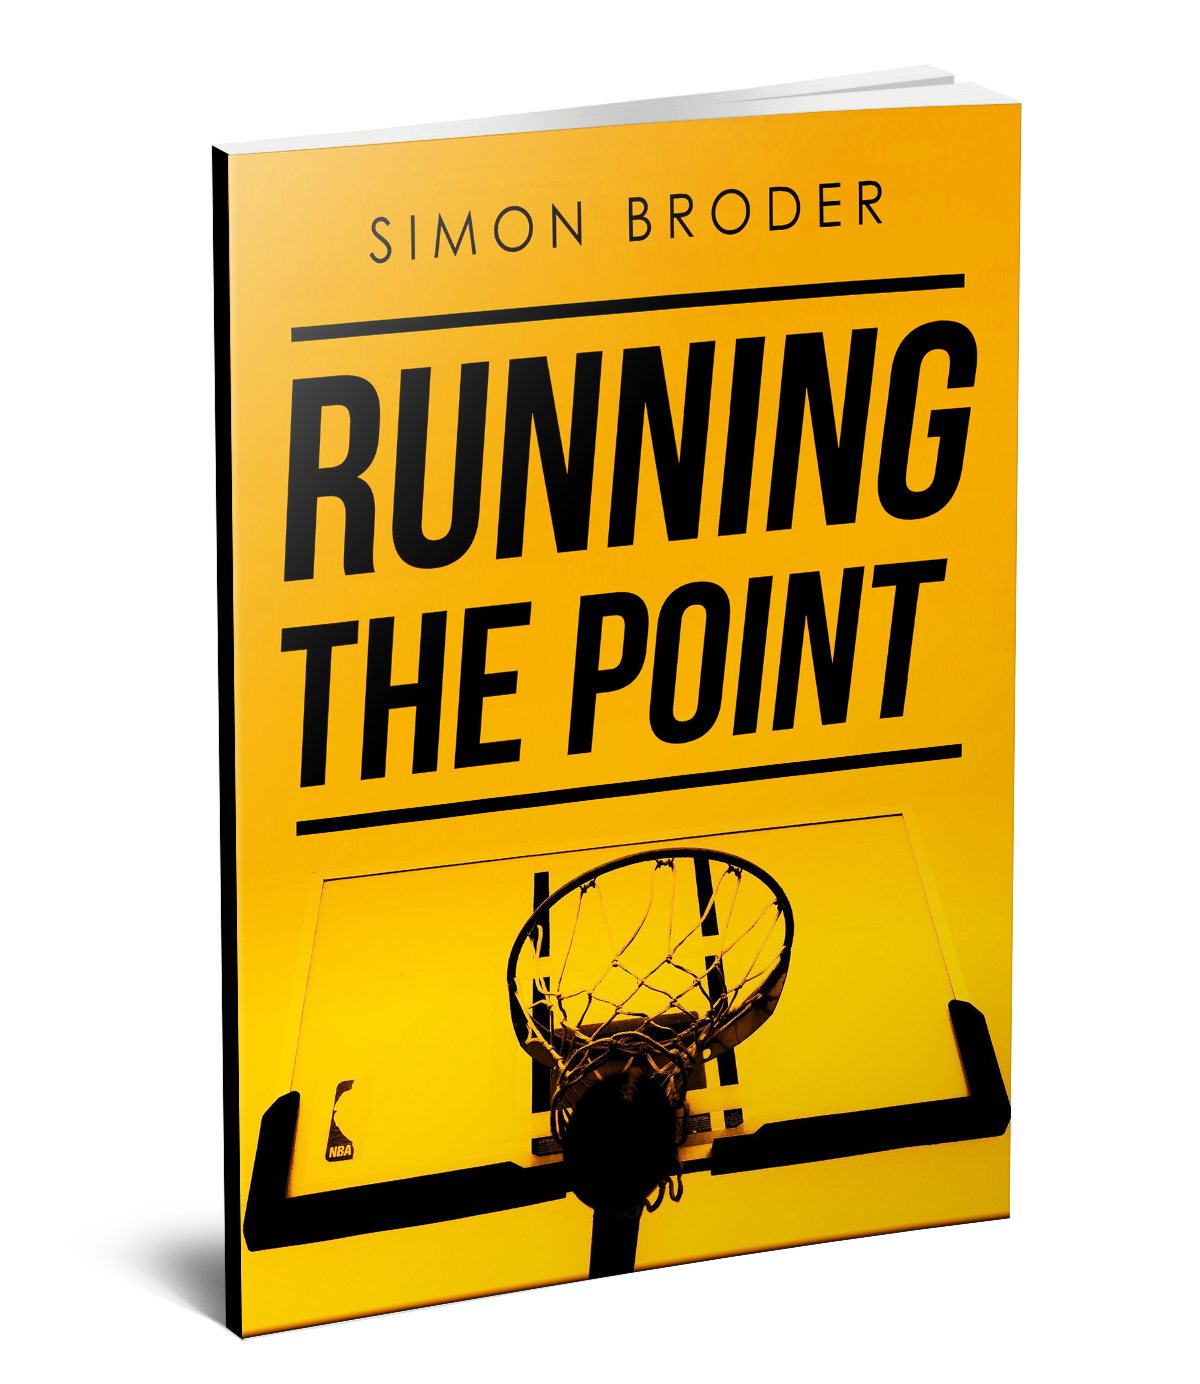 Diversity Grand Prize -  RUNNING THE POINT by Simon BroderEnnie wants to be a basketball player. He also wants to help Kelly, the girl he befriends who struggles with issues at home. When Kelly starts getting Ennie into trouble, he wonders whether he can really help her.